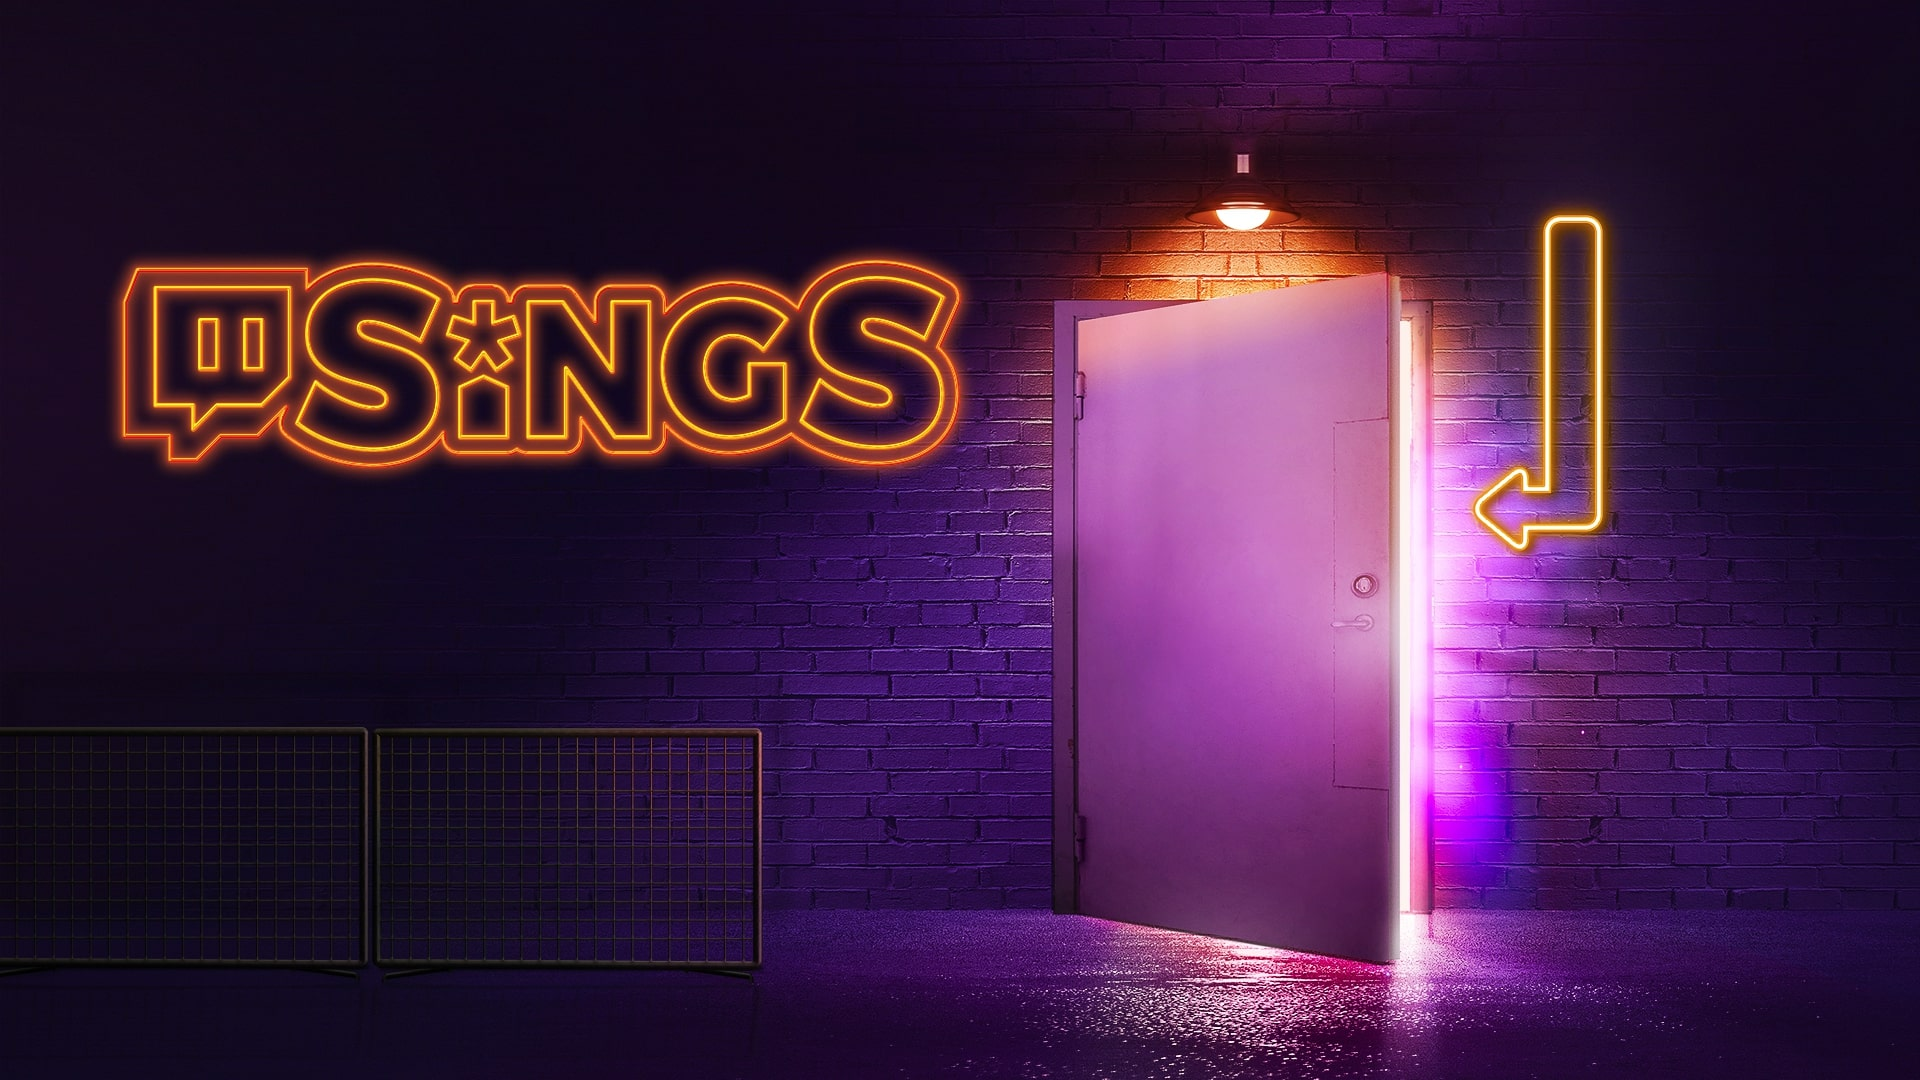 Twitch launches their own karaoke videogame called 'Twitch Sings'